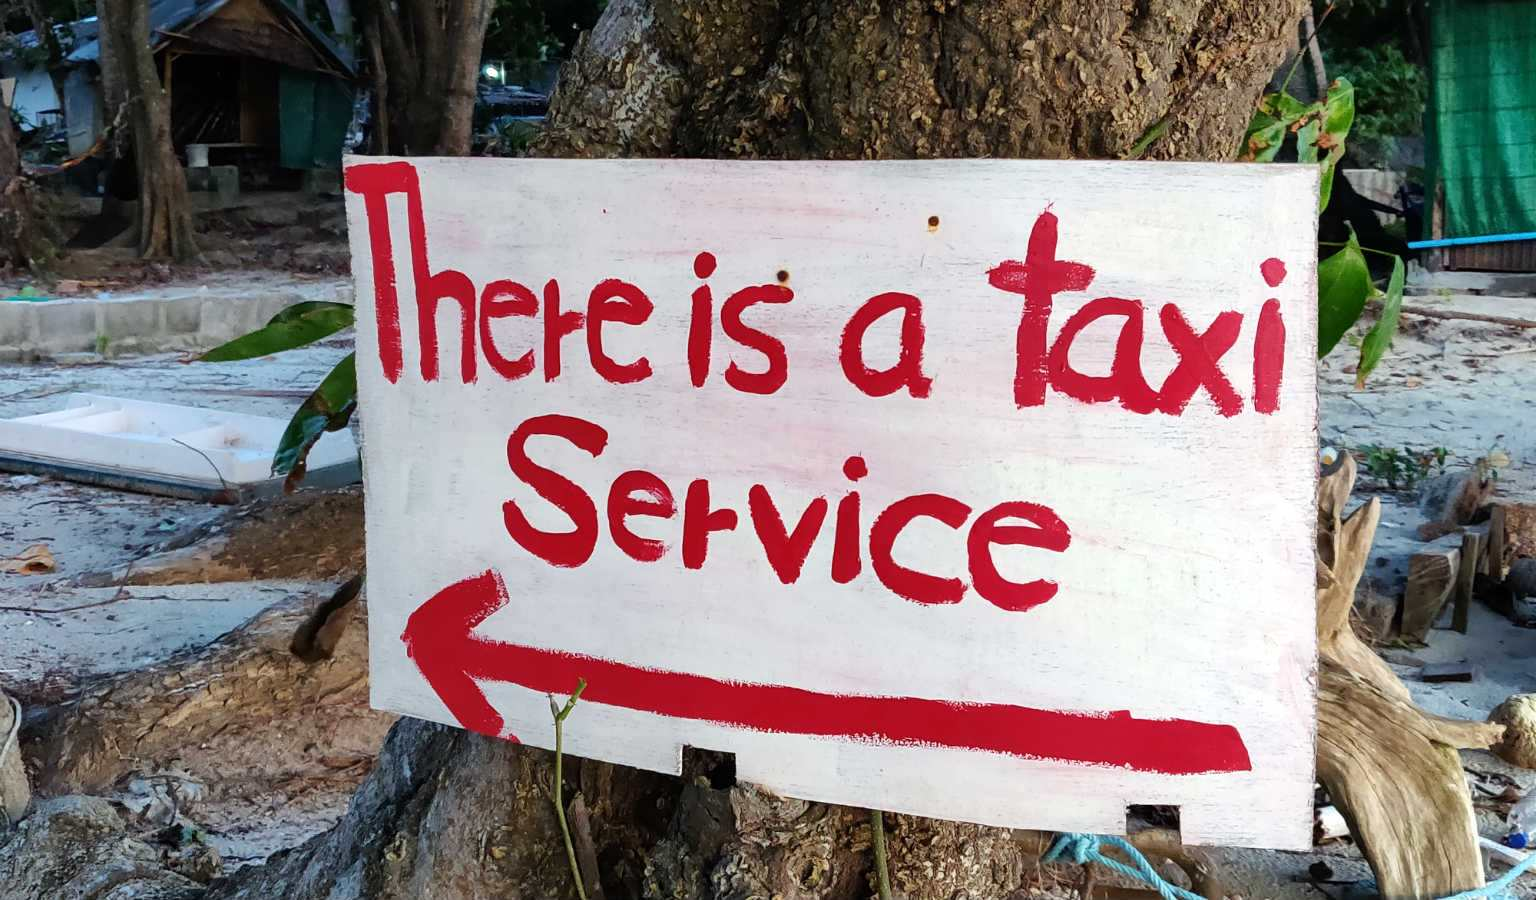 There is a taxi service sign at Sunset Beach on Koh Lipe